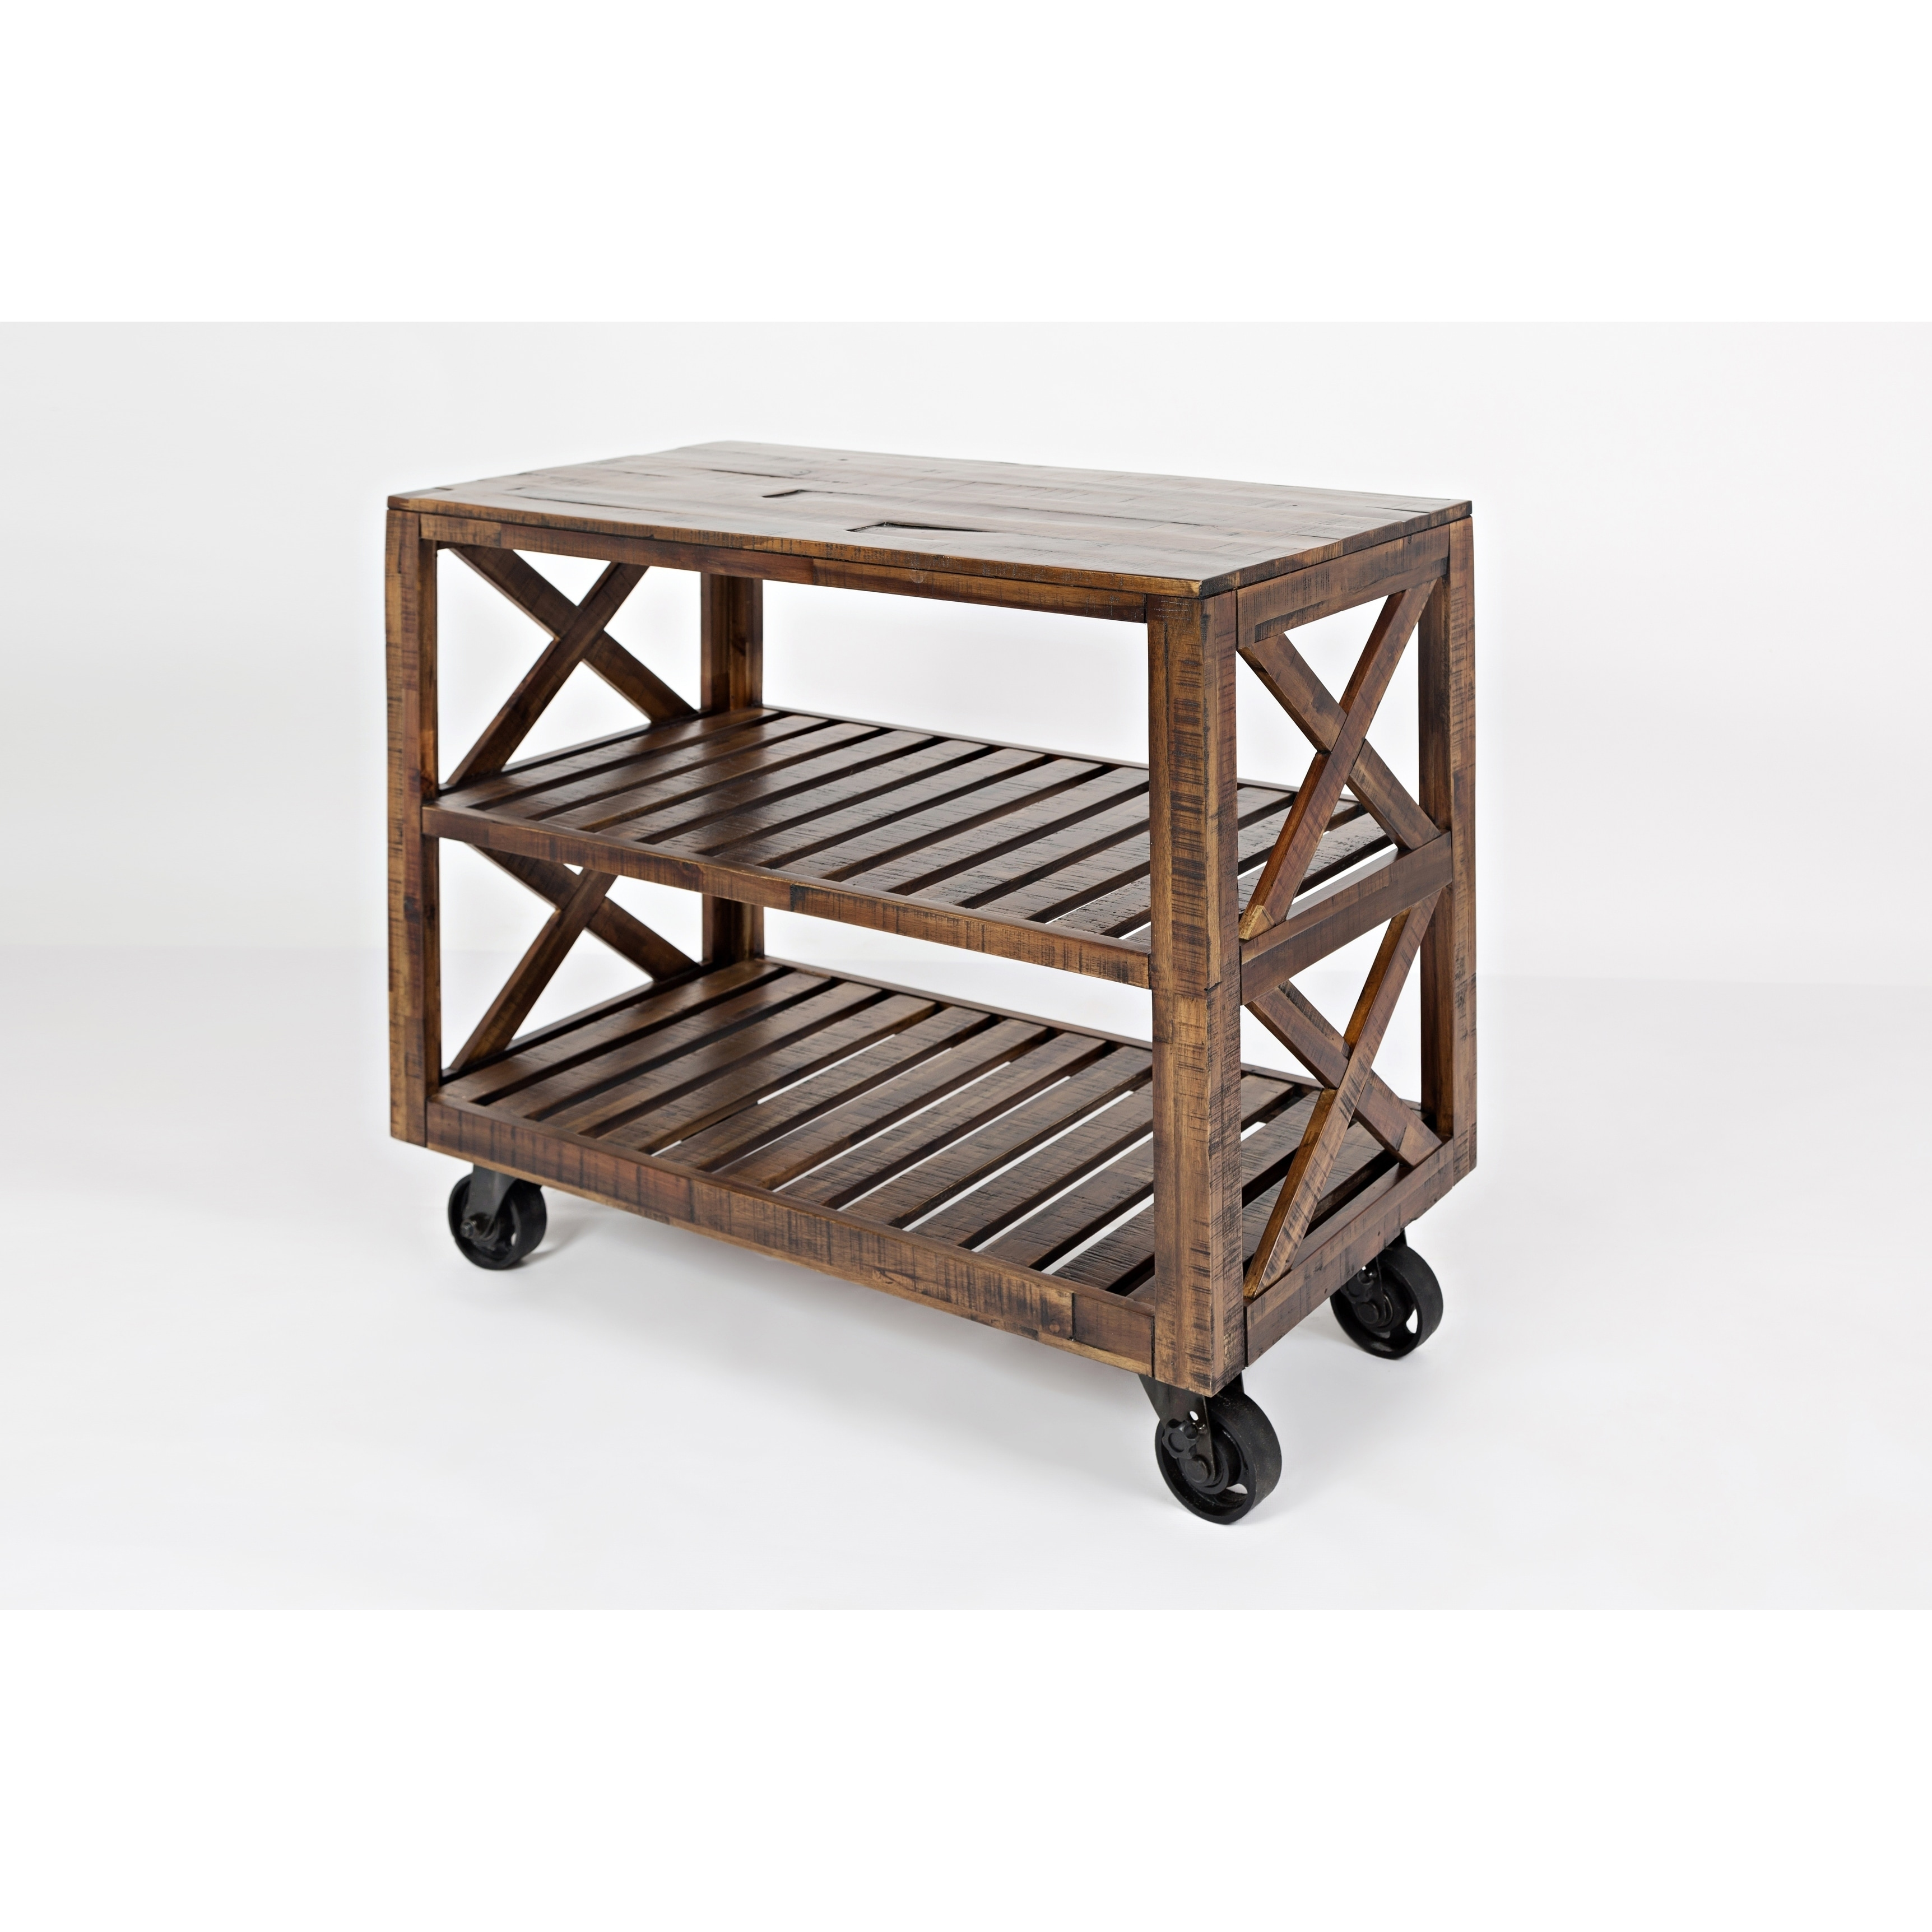 Solid Wood Trolley Cart With Two Slatted Shelves, Brown